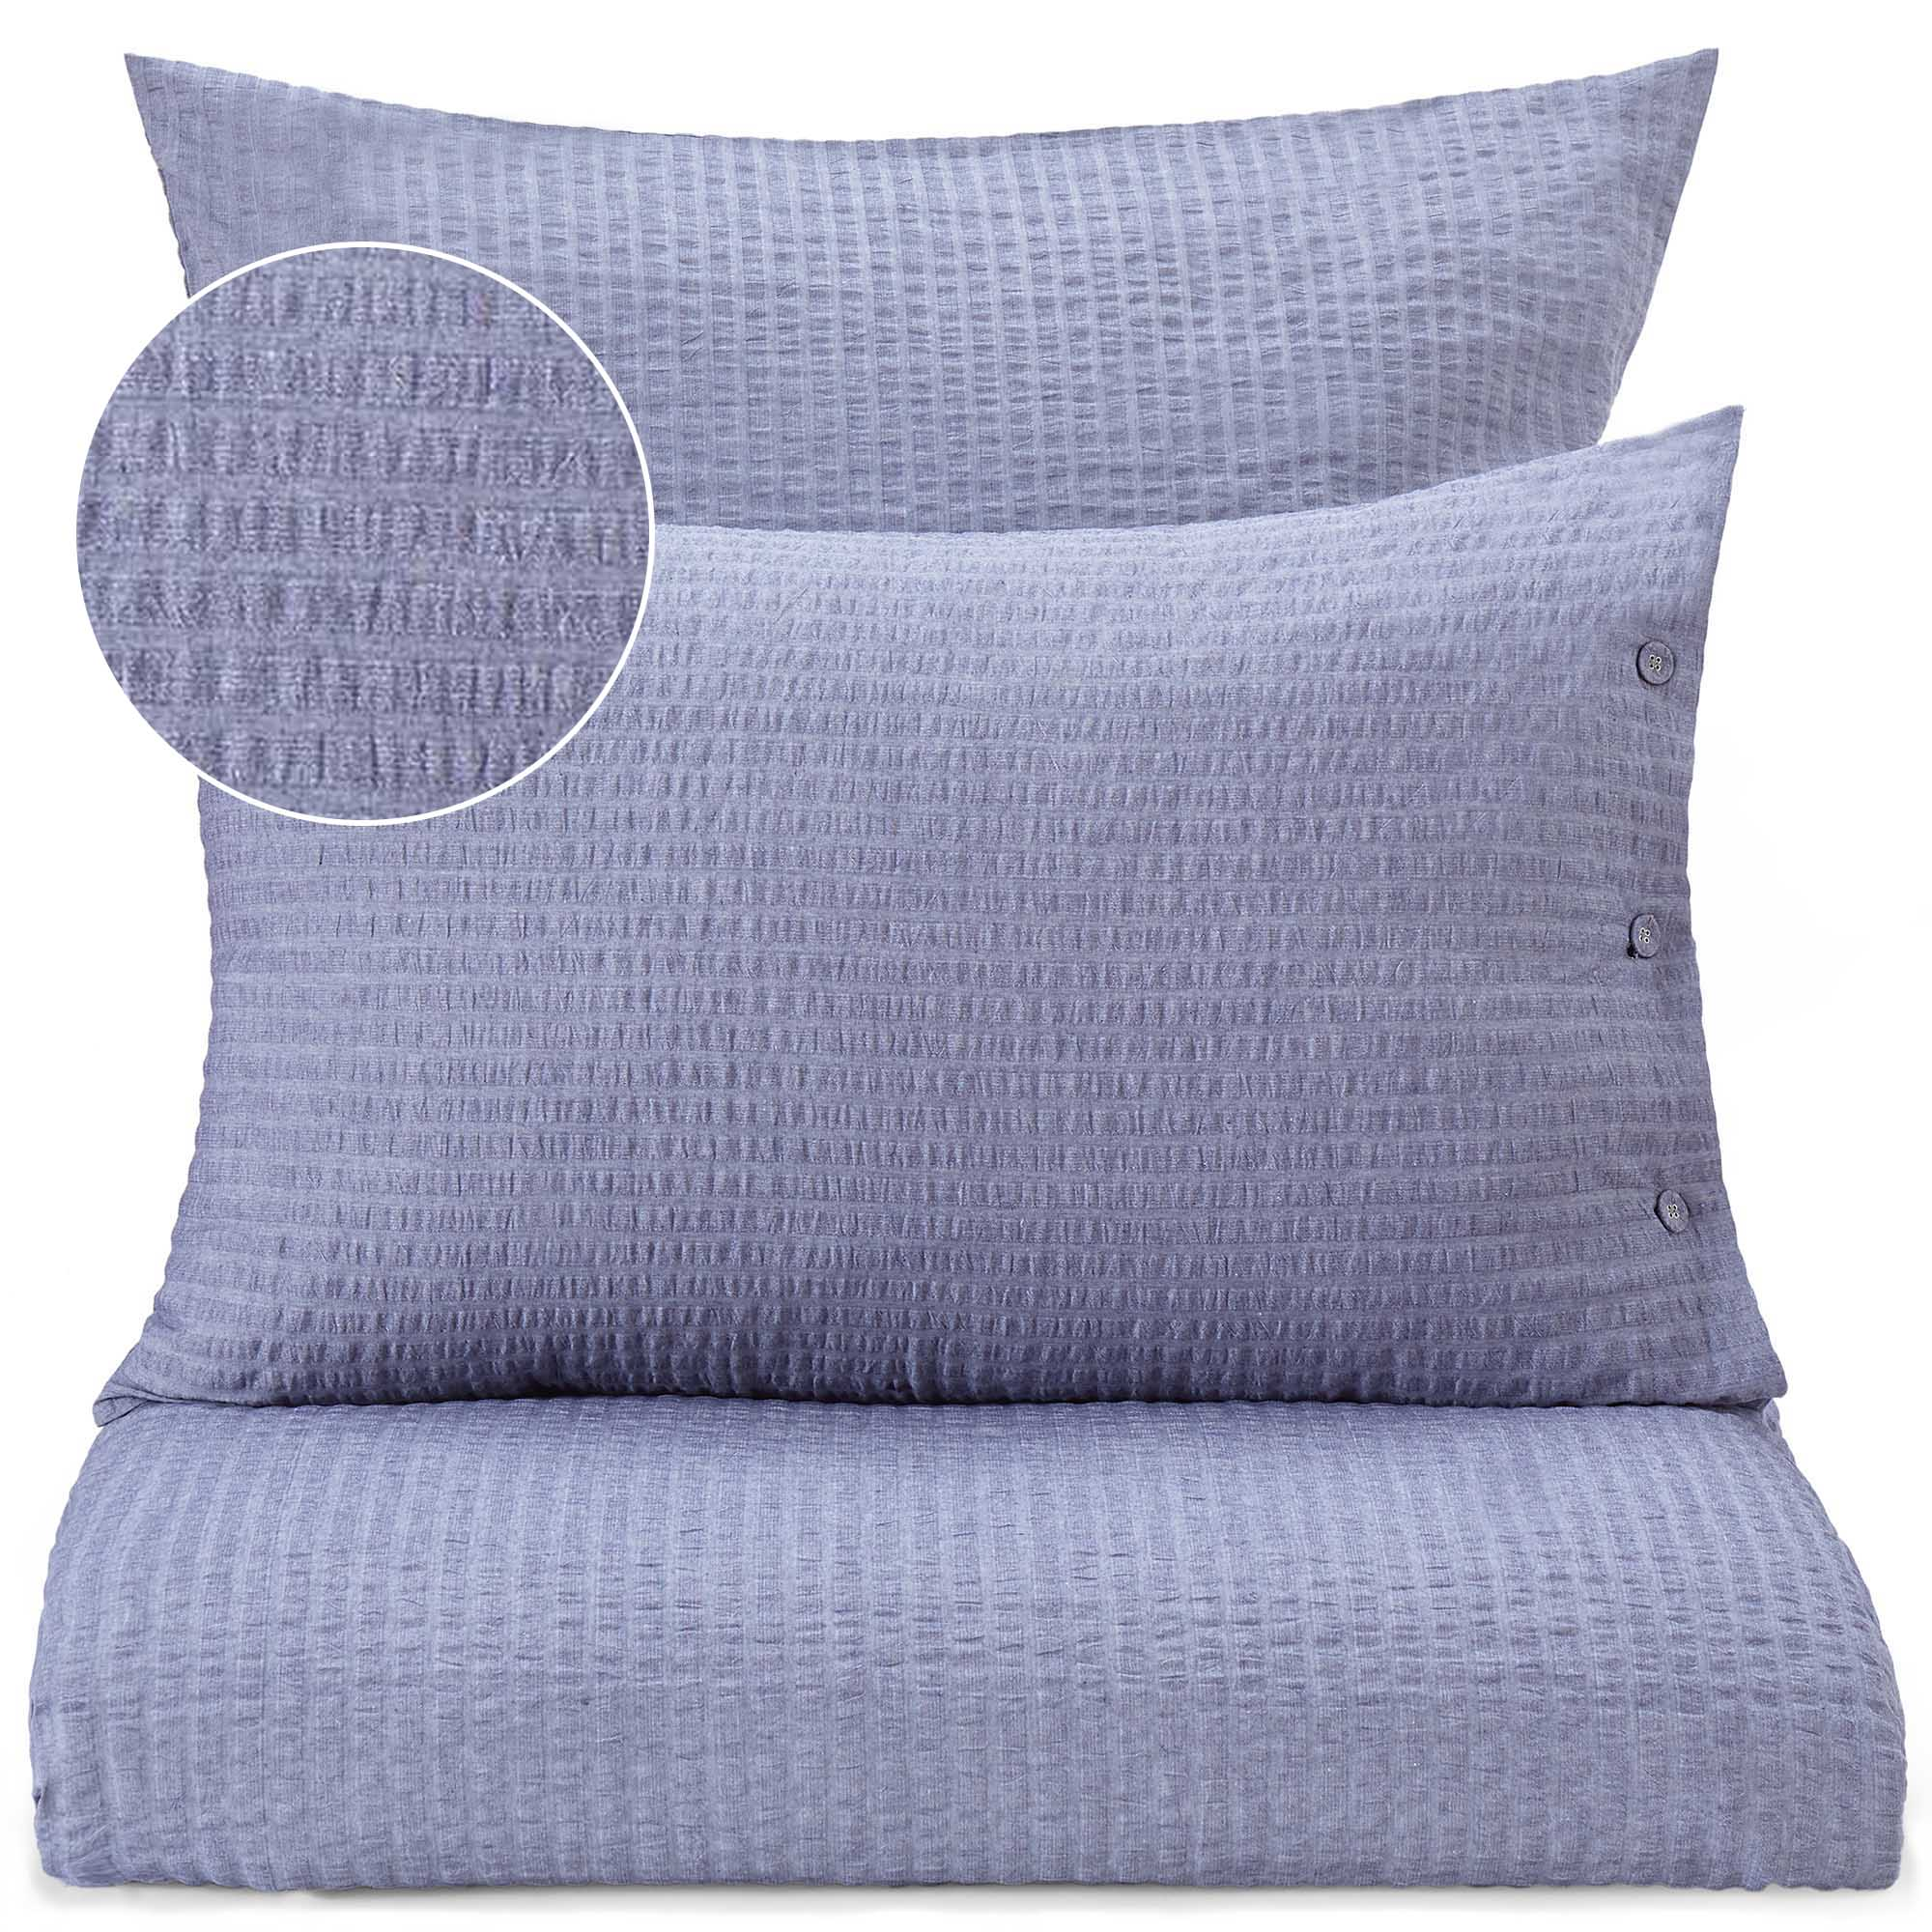 Ansei Pillowcase [Denim blue]